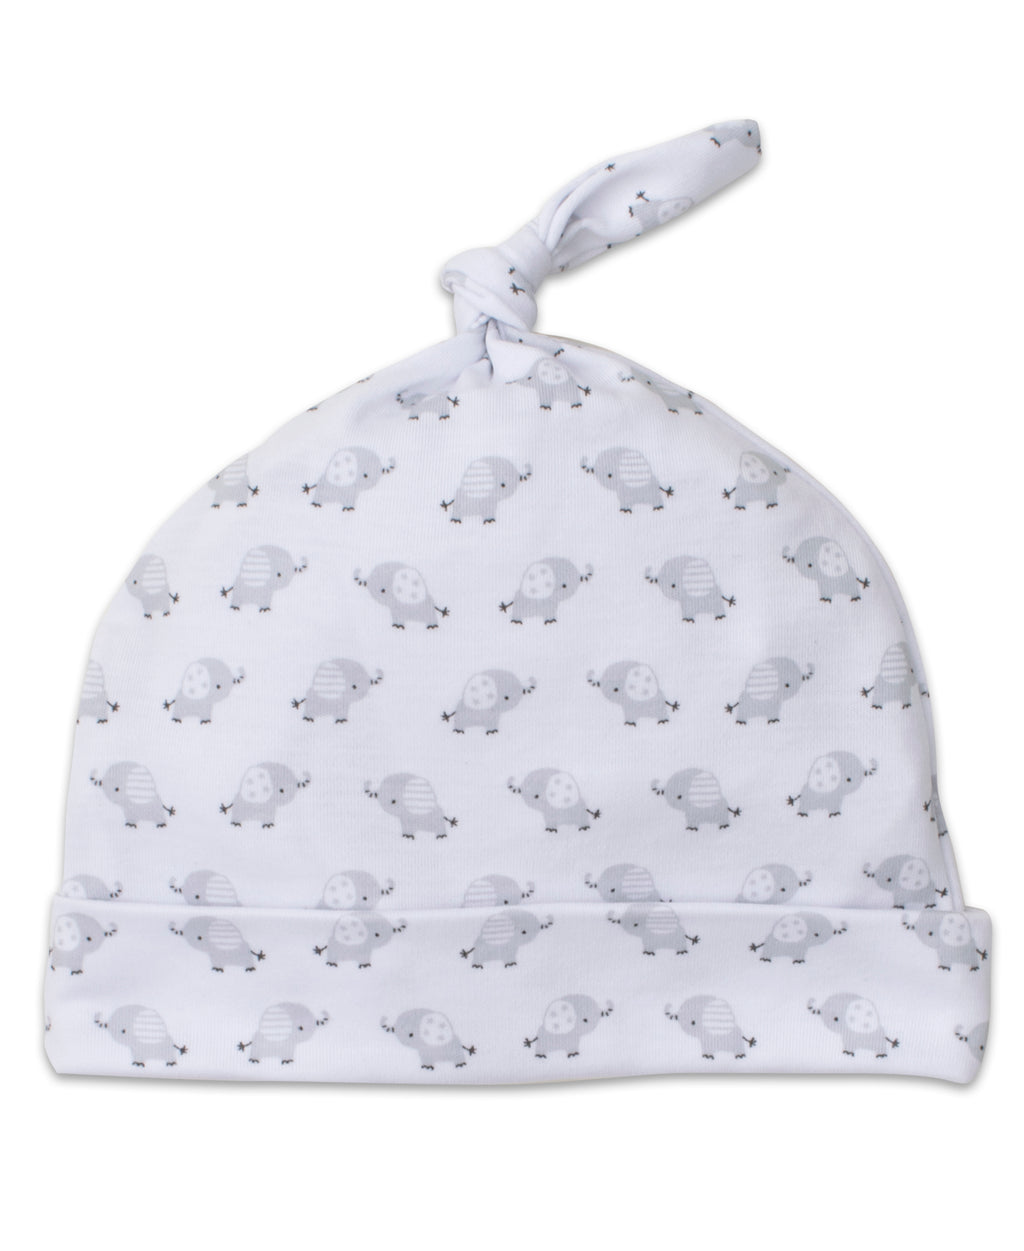 Baby Trunks Silver Print Hat